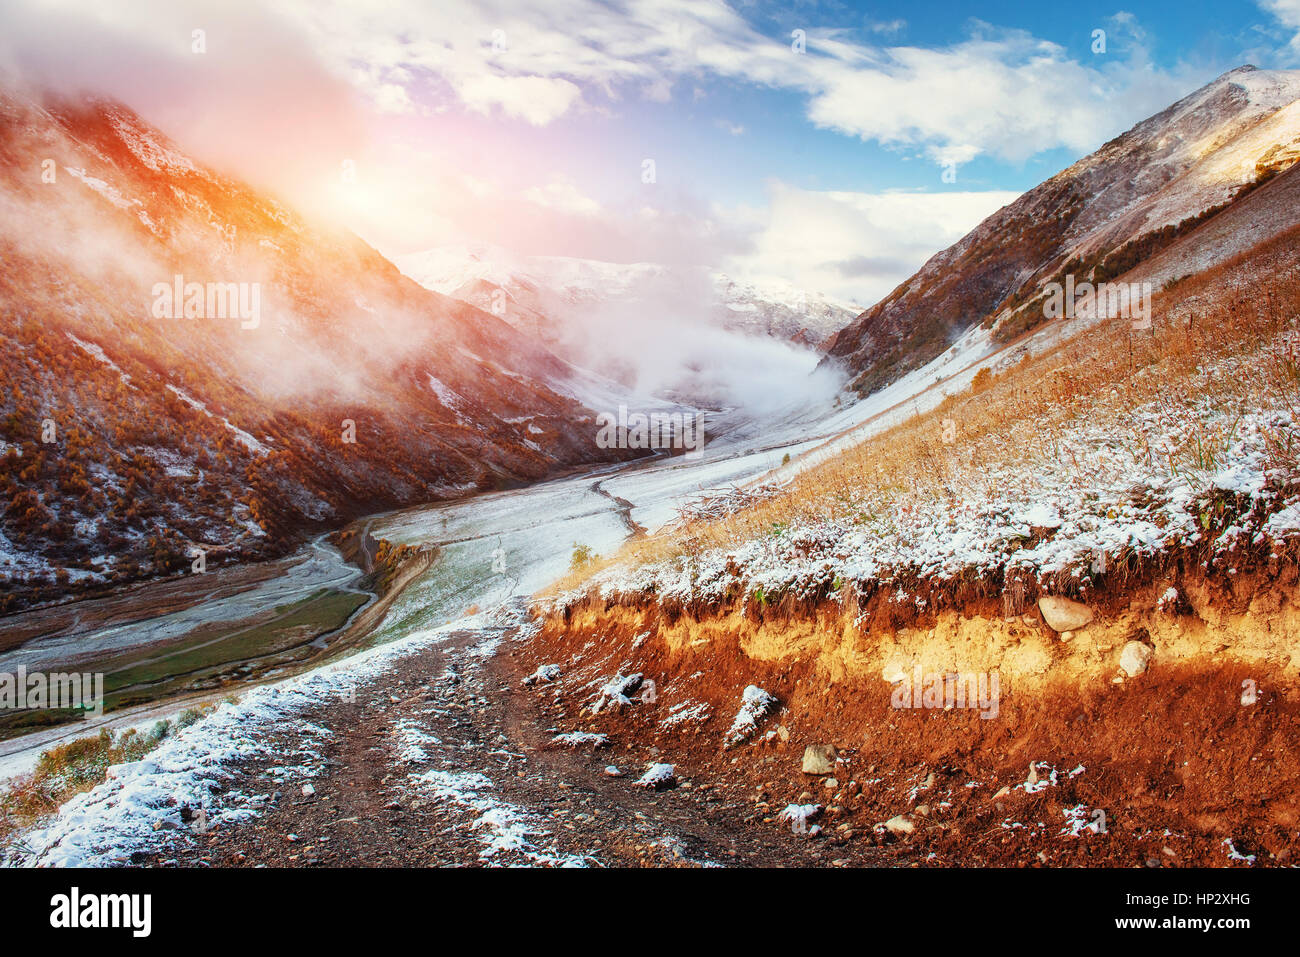 Mountain landscape of snow-capped mountains in the mist - Stock Image